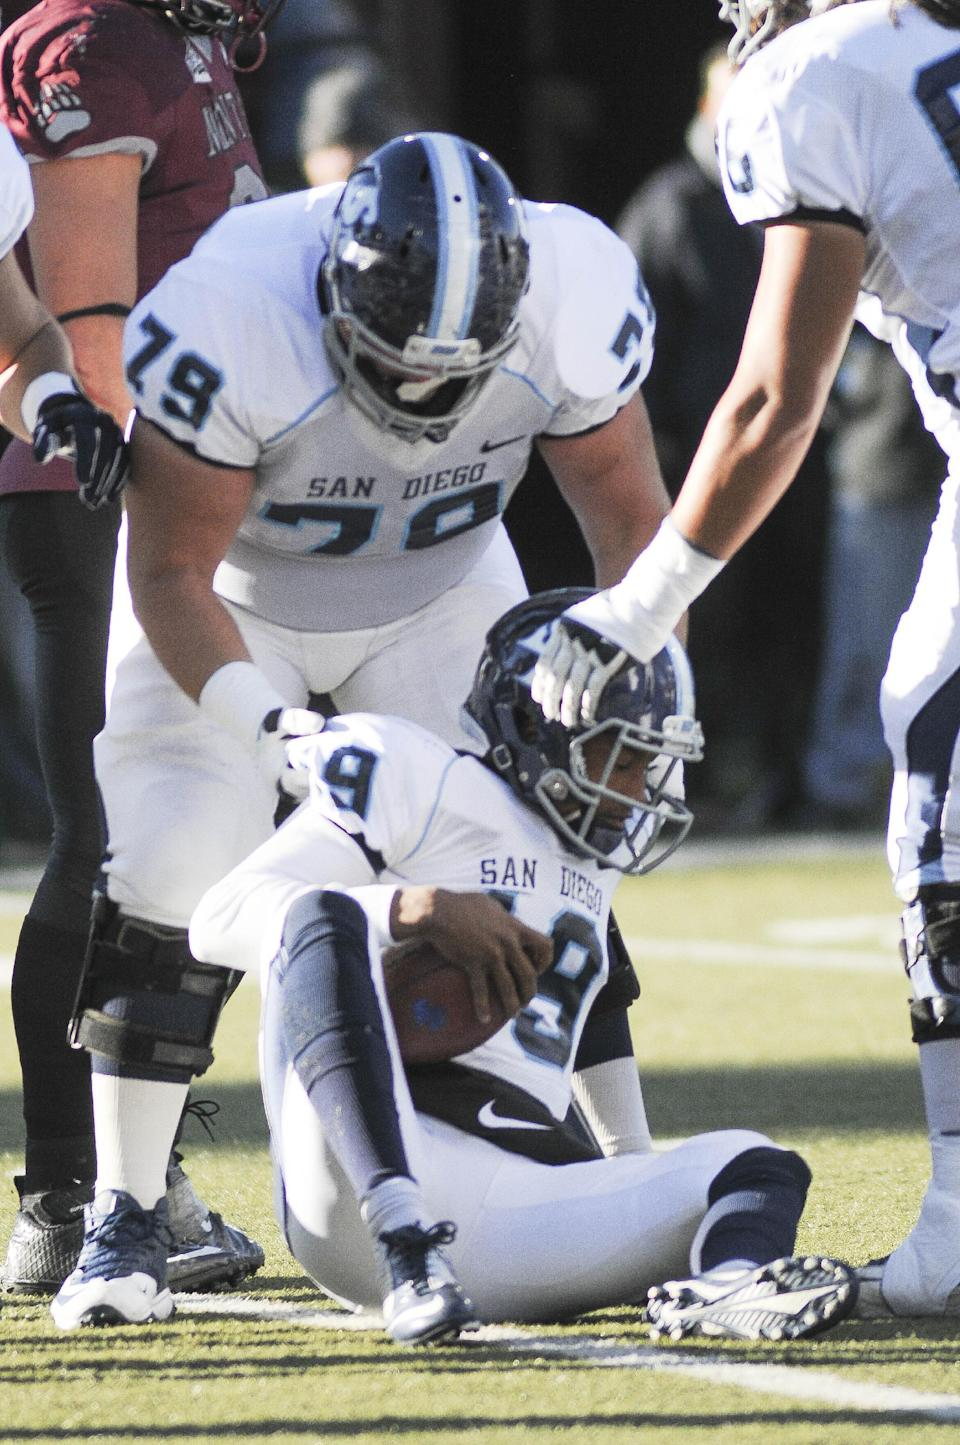 San Diego quarterback Keith Williams (19) is helped up by offensive lineman Jeff Starr (79) after being sacked during the first half of an NCAA college football playoff game against Montana, Saturday, Nov. 29, 2014, in Missoula, Mont. (AP Photo/Lido Vizzutti)